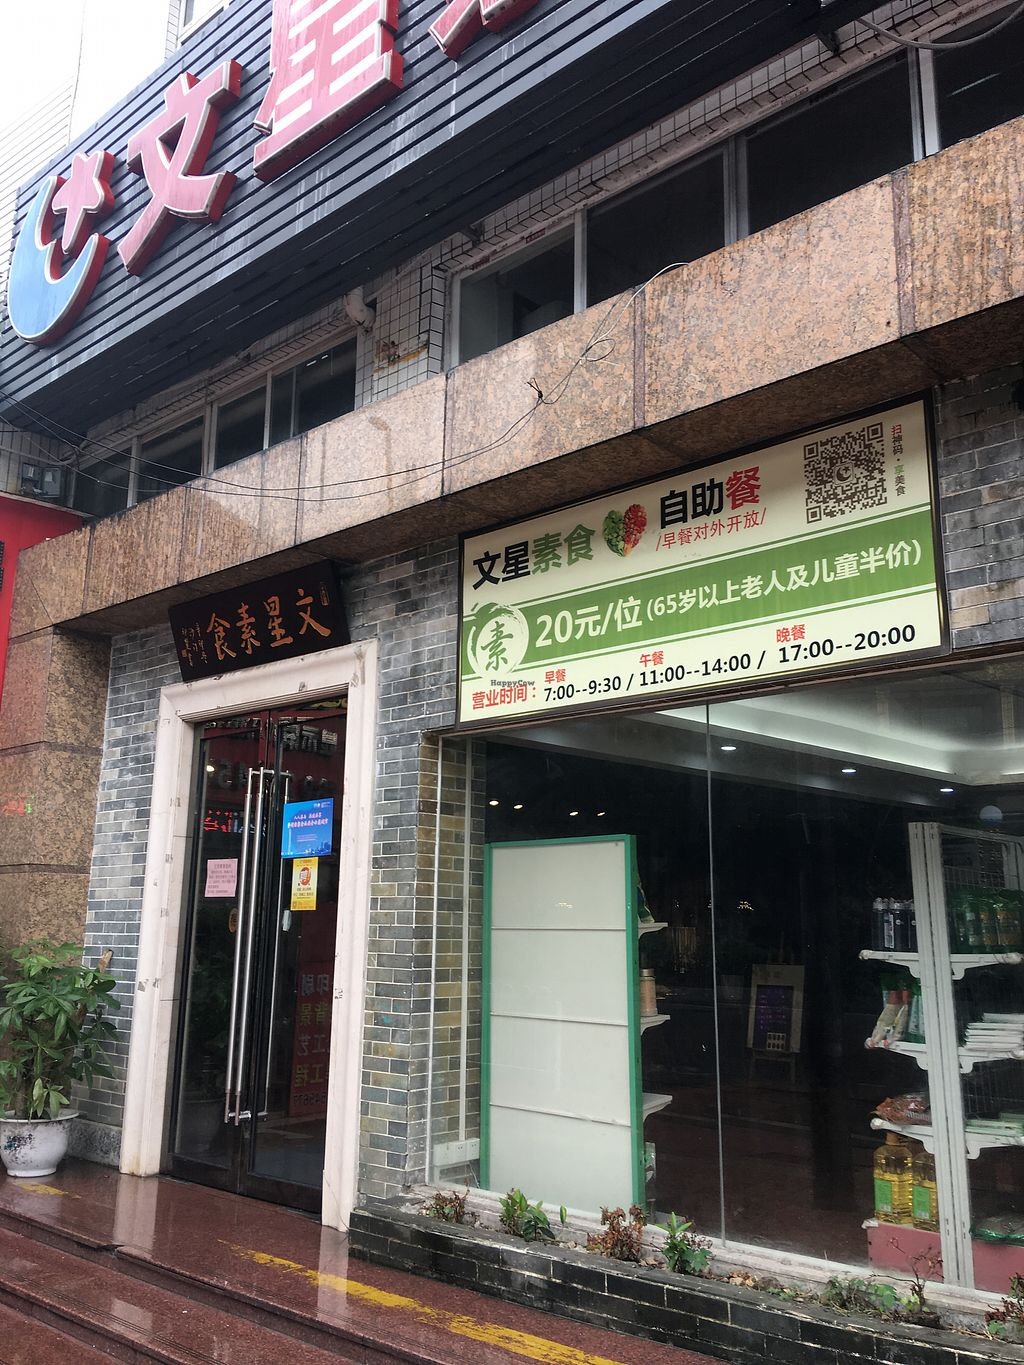 """Photo of Wen Xing Vegetarian - Shatai S Road  by <a href=""""/members/profile/Stevie"""">Stevie</a> <br/>Shop entrance <br/> October 3, 2017  - <a href='/contact/abuse/image/56706/311387'>Report</a>"""